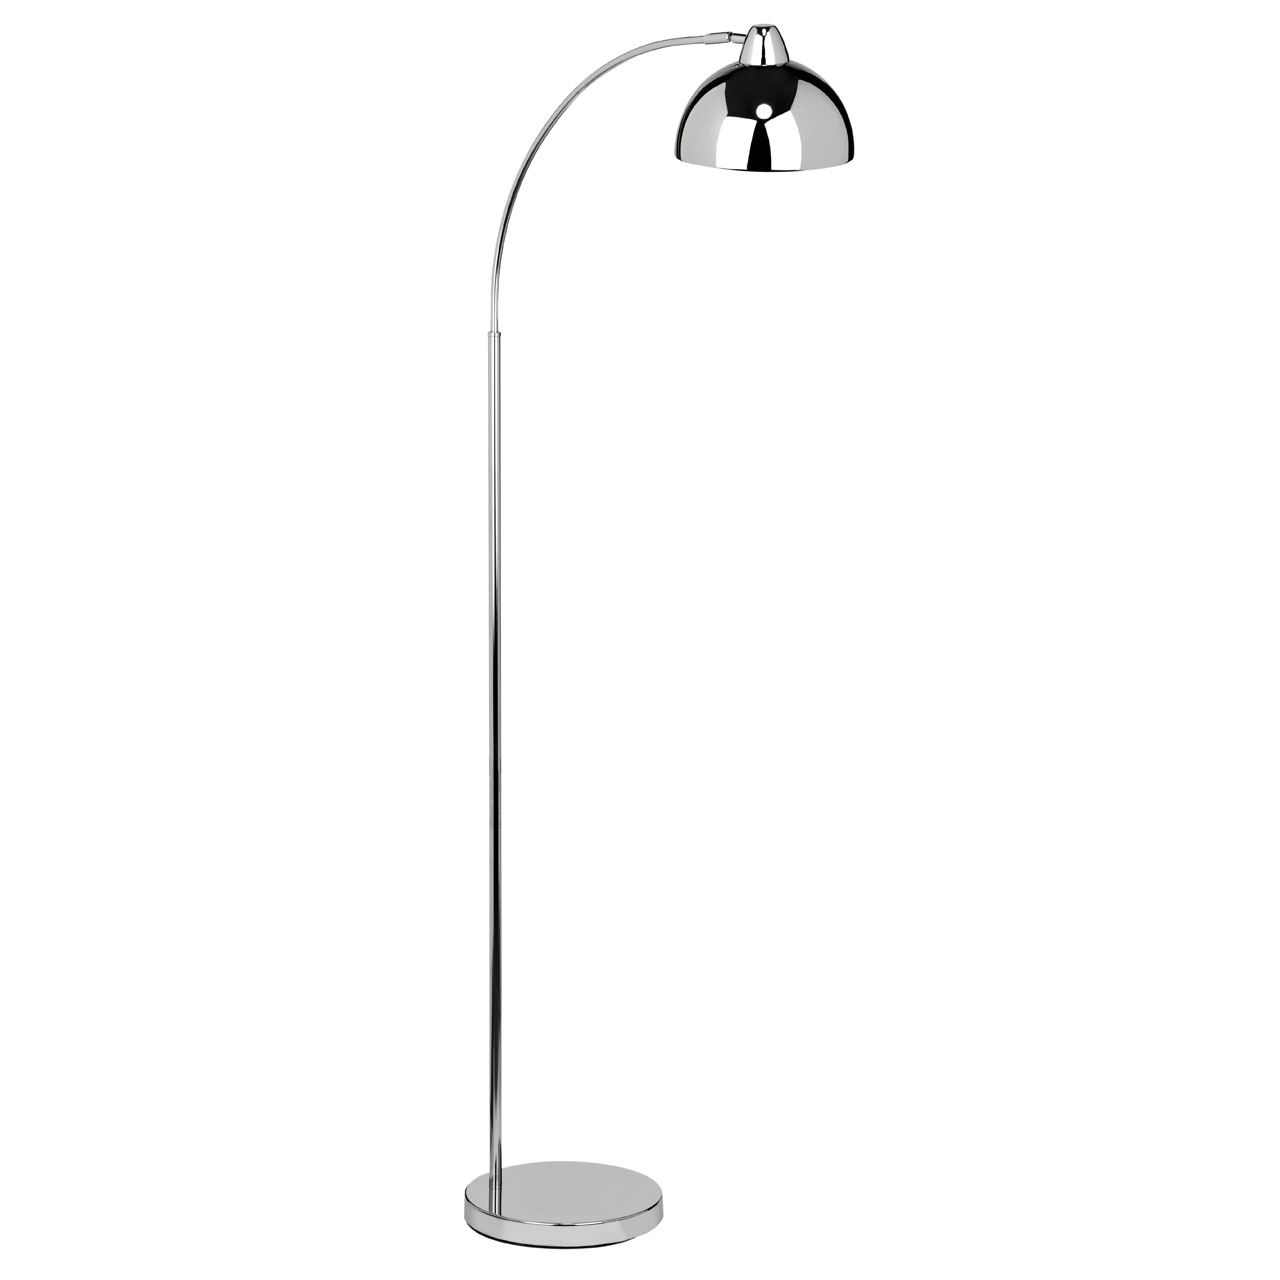 Calle Floor Lamp, Foot Switch, Chrome Finish Metal